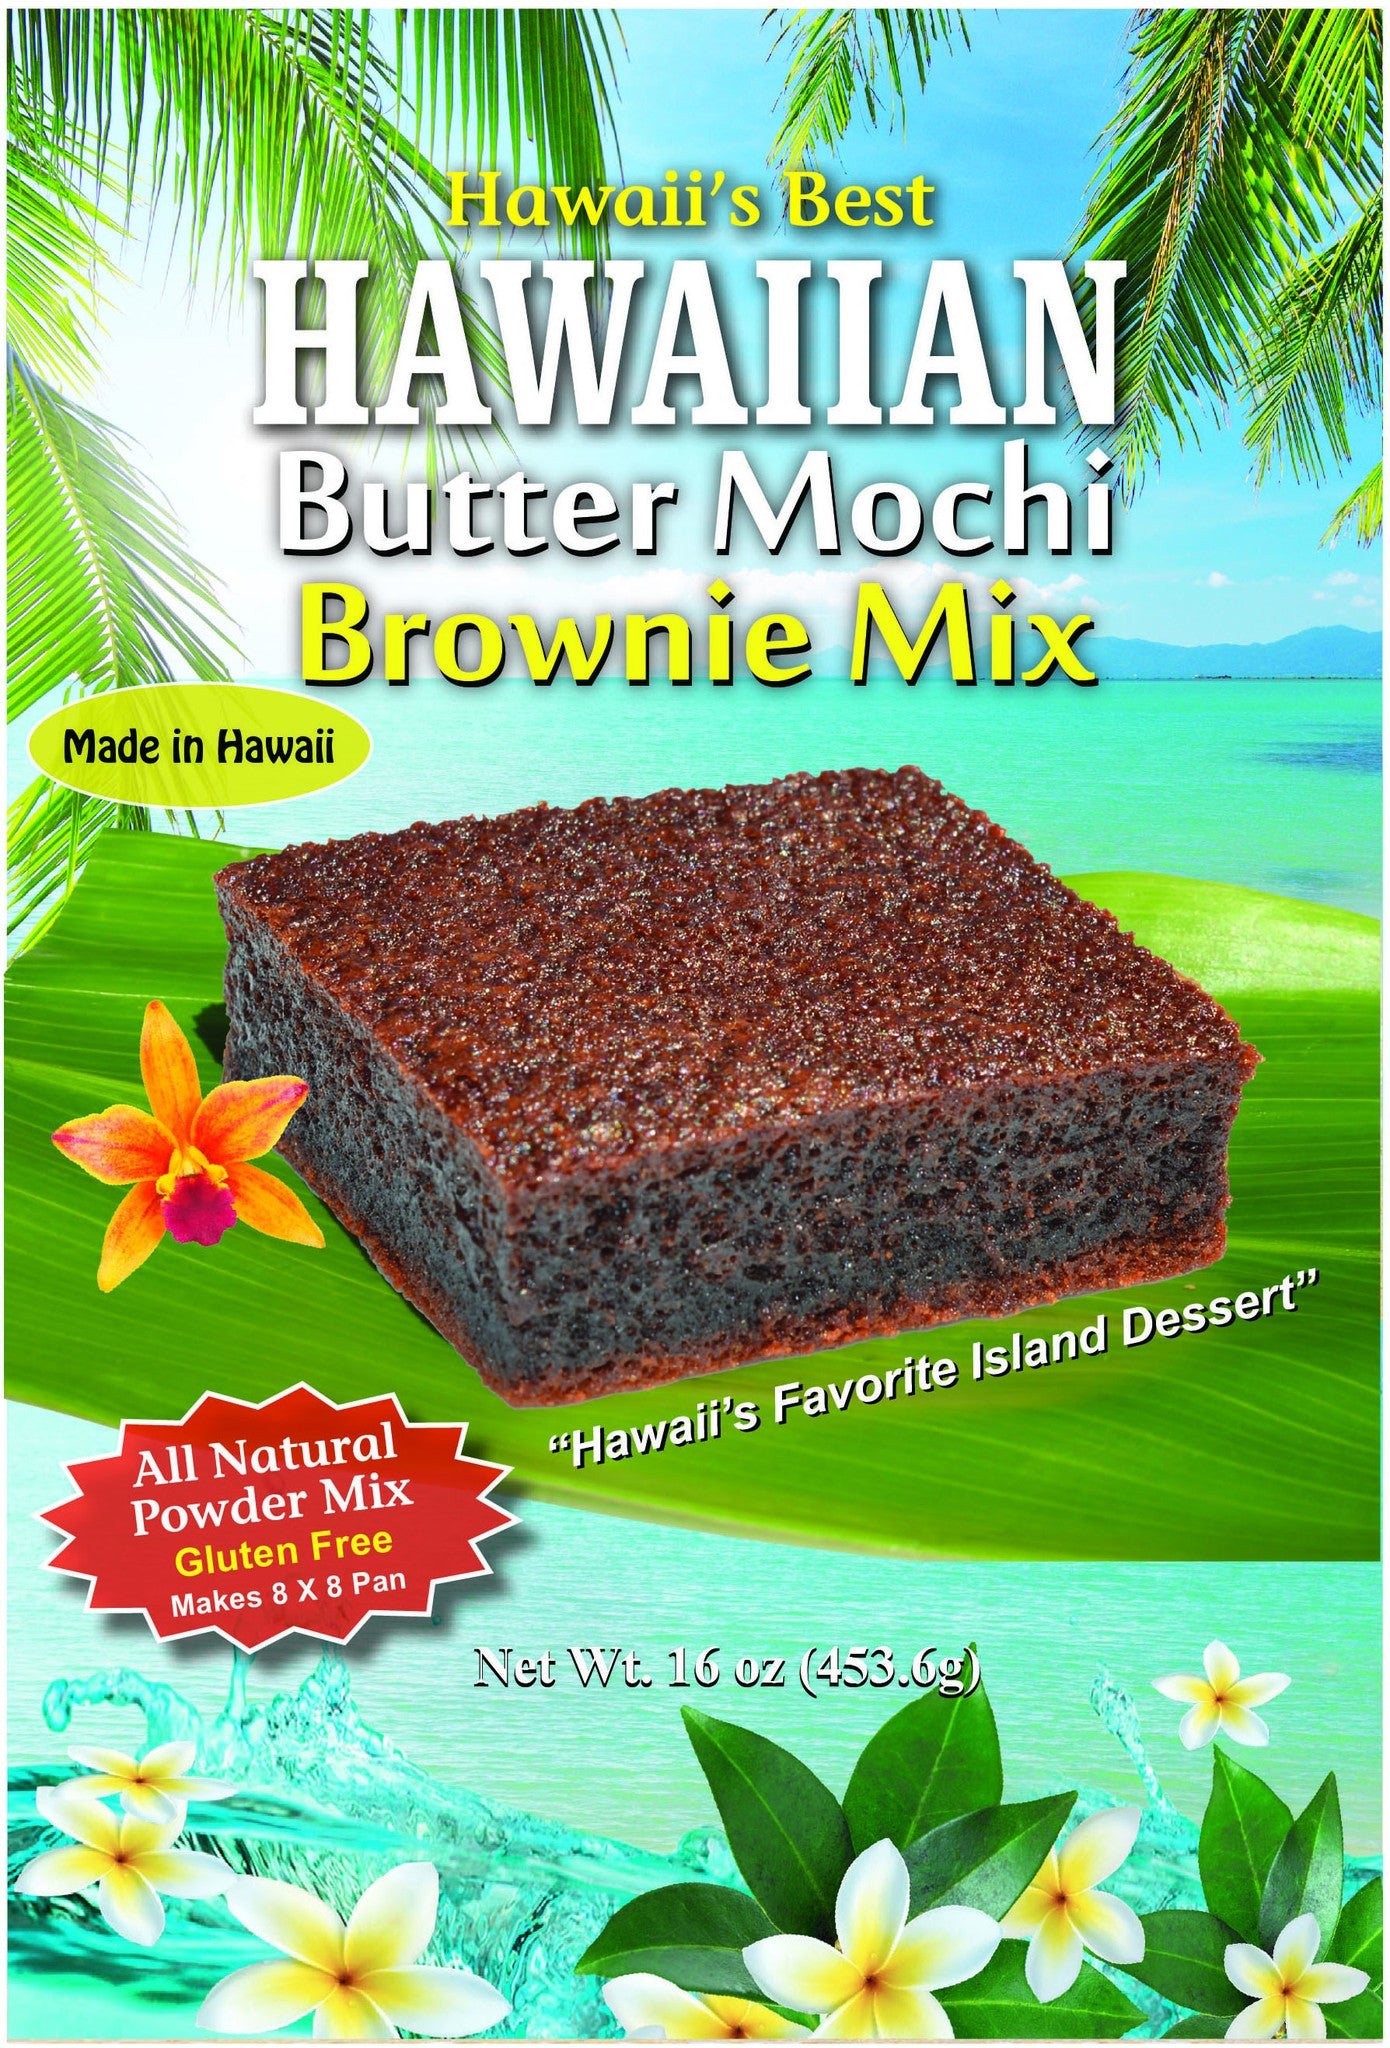 (3 BAGS - EXTRA VALUE PACK, $6.99 EACH)  BROWNIE BUTTER MOCHI MIX (MADE WITH 100% GHIRARDELLI COCOA)